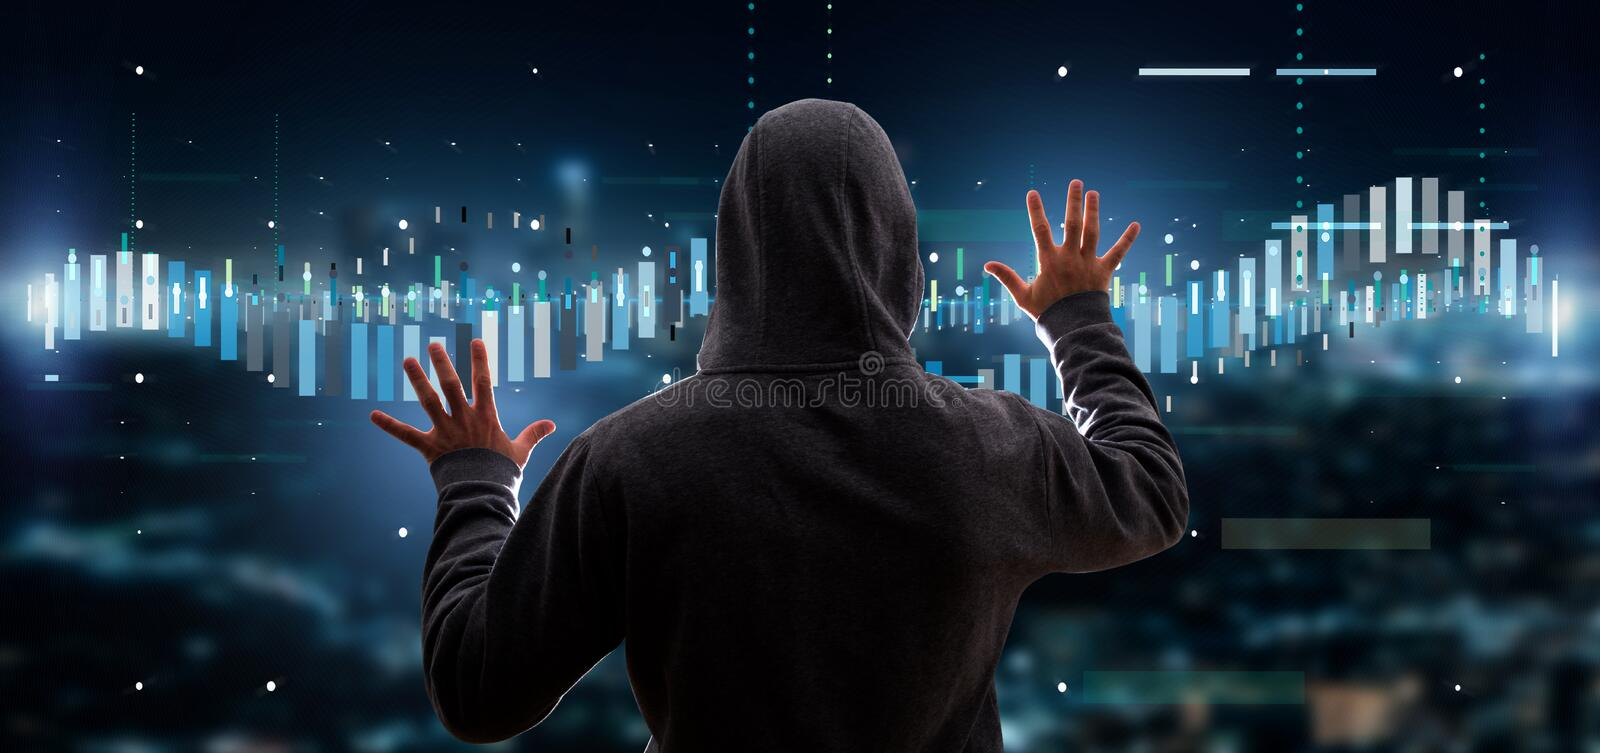 Hacker activating Business stock exchange trading data information stock images